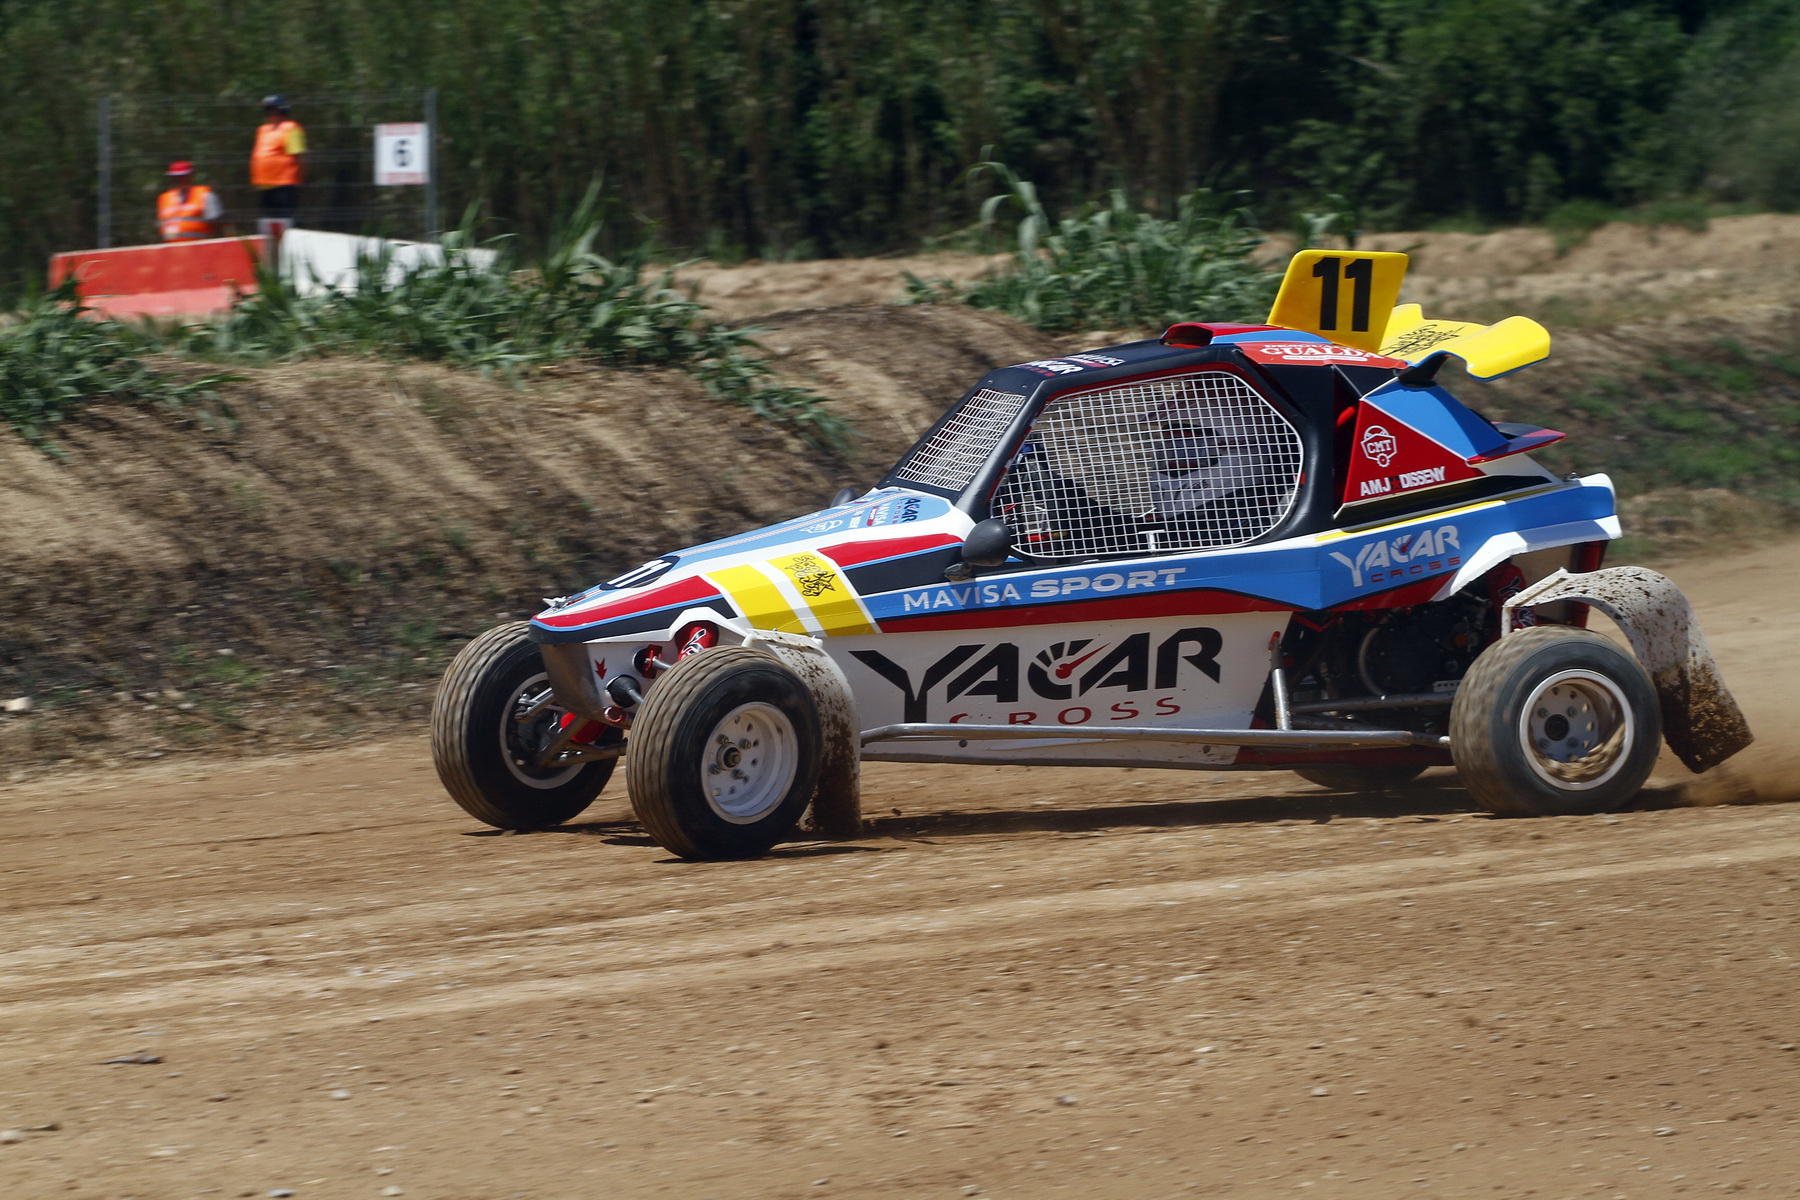 YacarRacing_AutocrossAraLleida2019_Final_SergiPerez